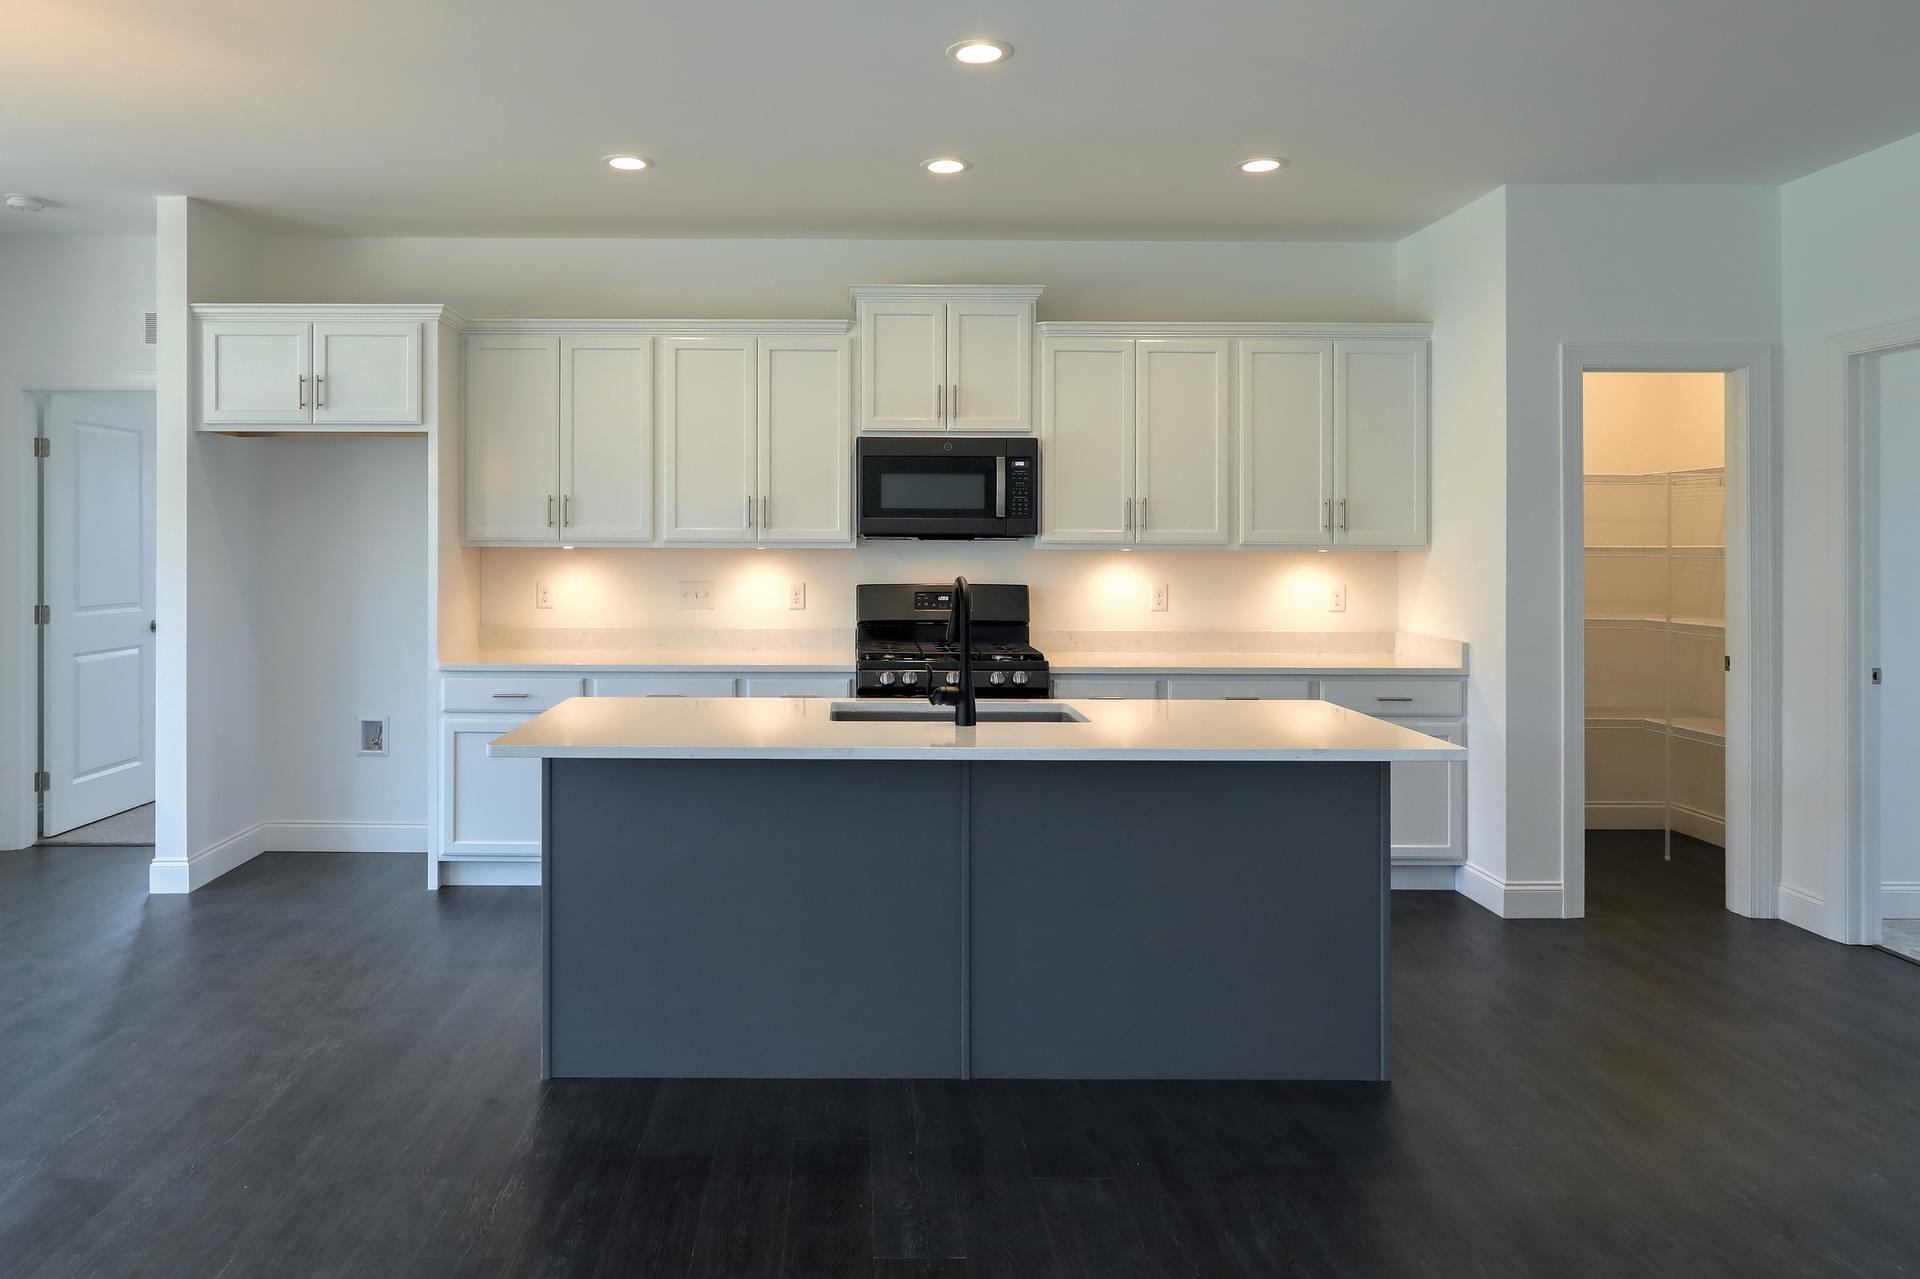 2,053sf New Home in Sinking Spring, PA